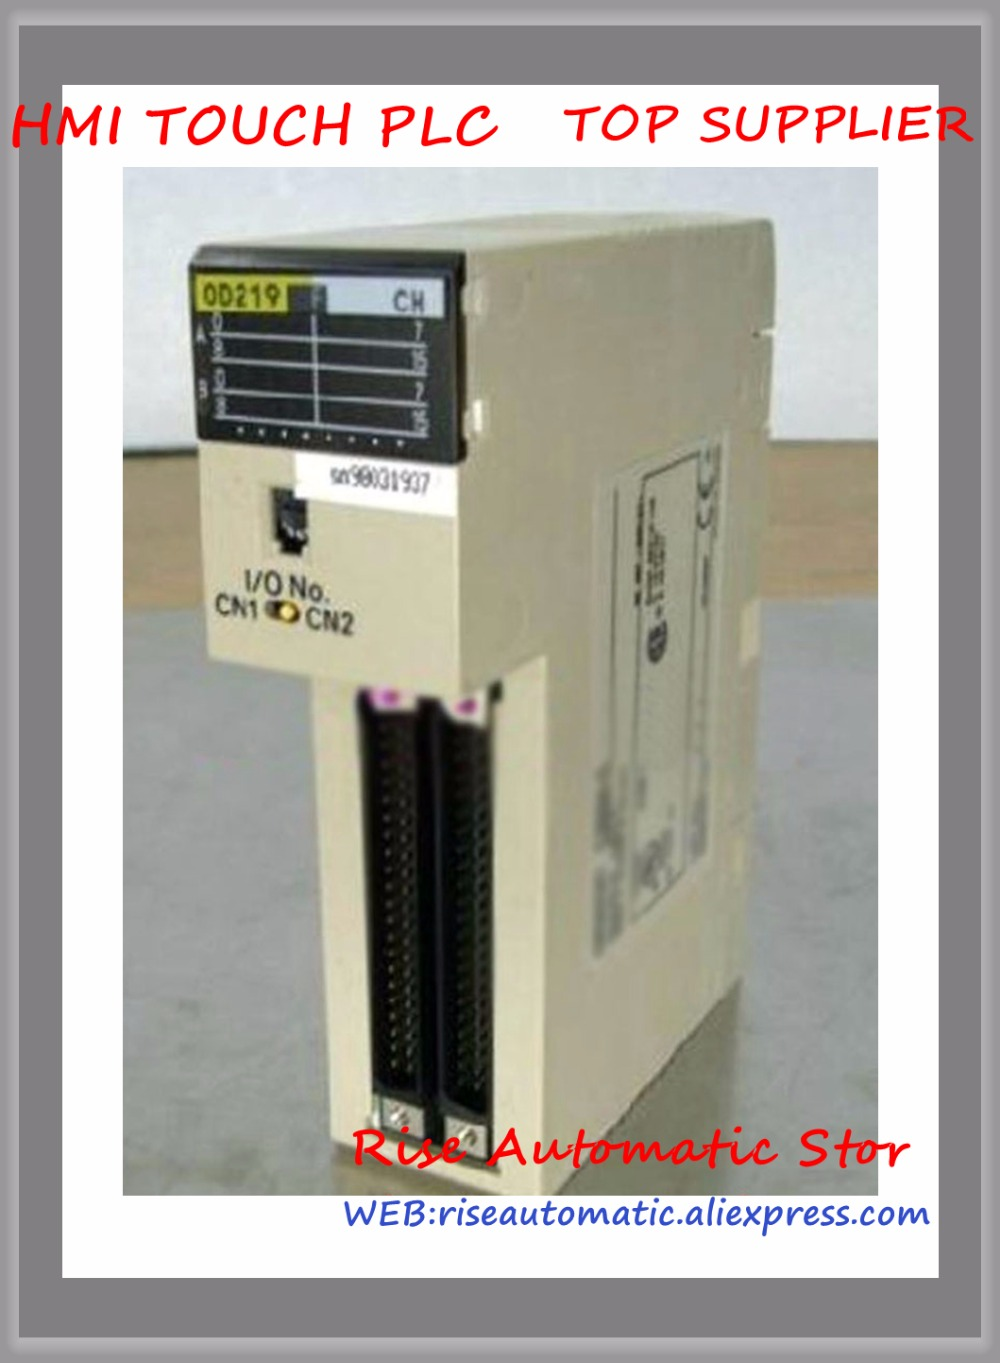 New Original C200H-OD219 PLC Programmable controller Module 100% Tested good quality cqm1 pa203 new power module cqm1 pa203 programmable controller plc module new in box cqm1pa203 ree shipping